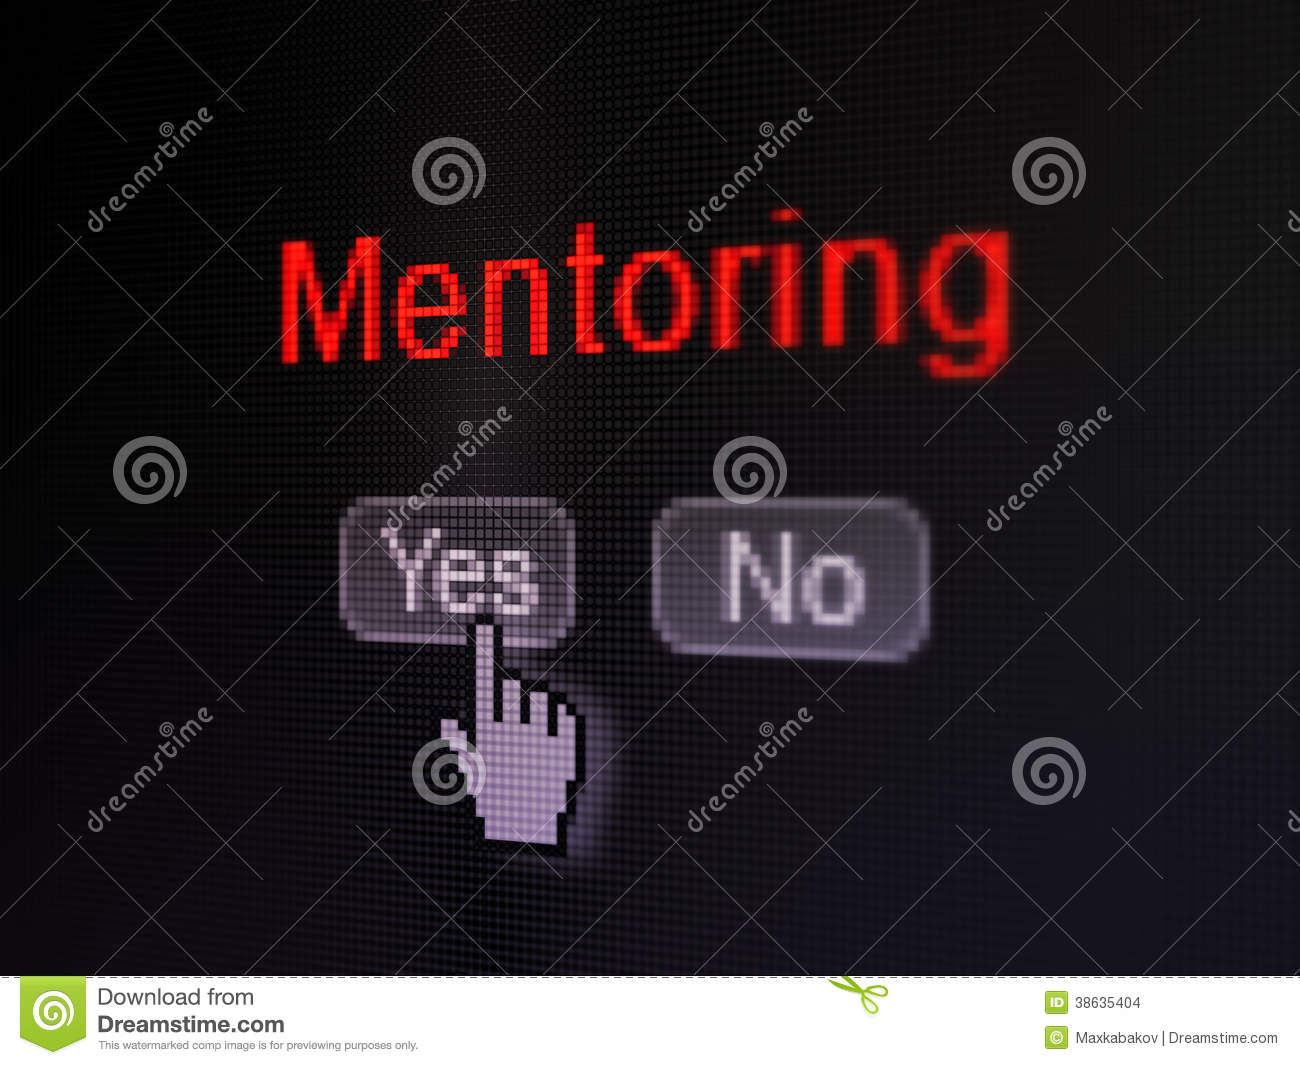 Education concept: Mentoring on digital computer screen